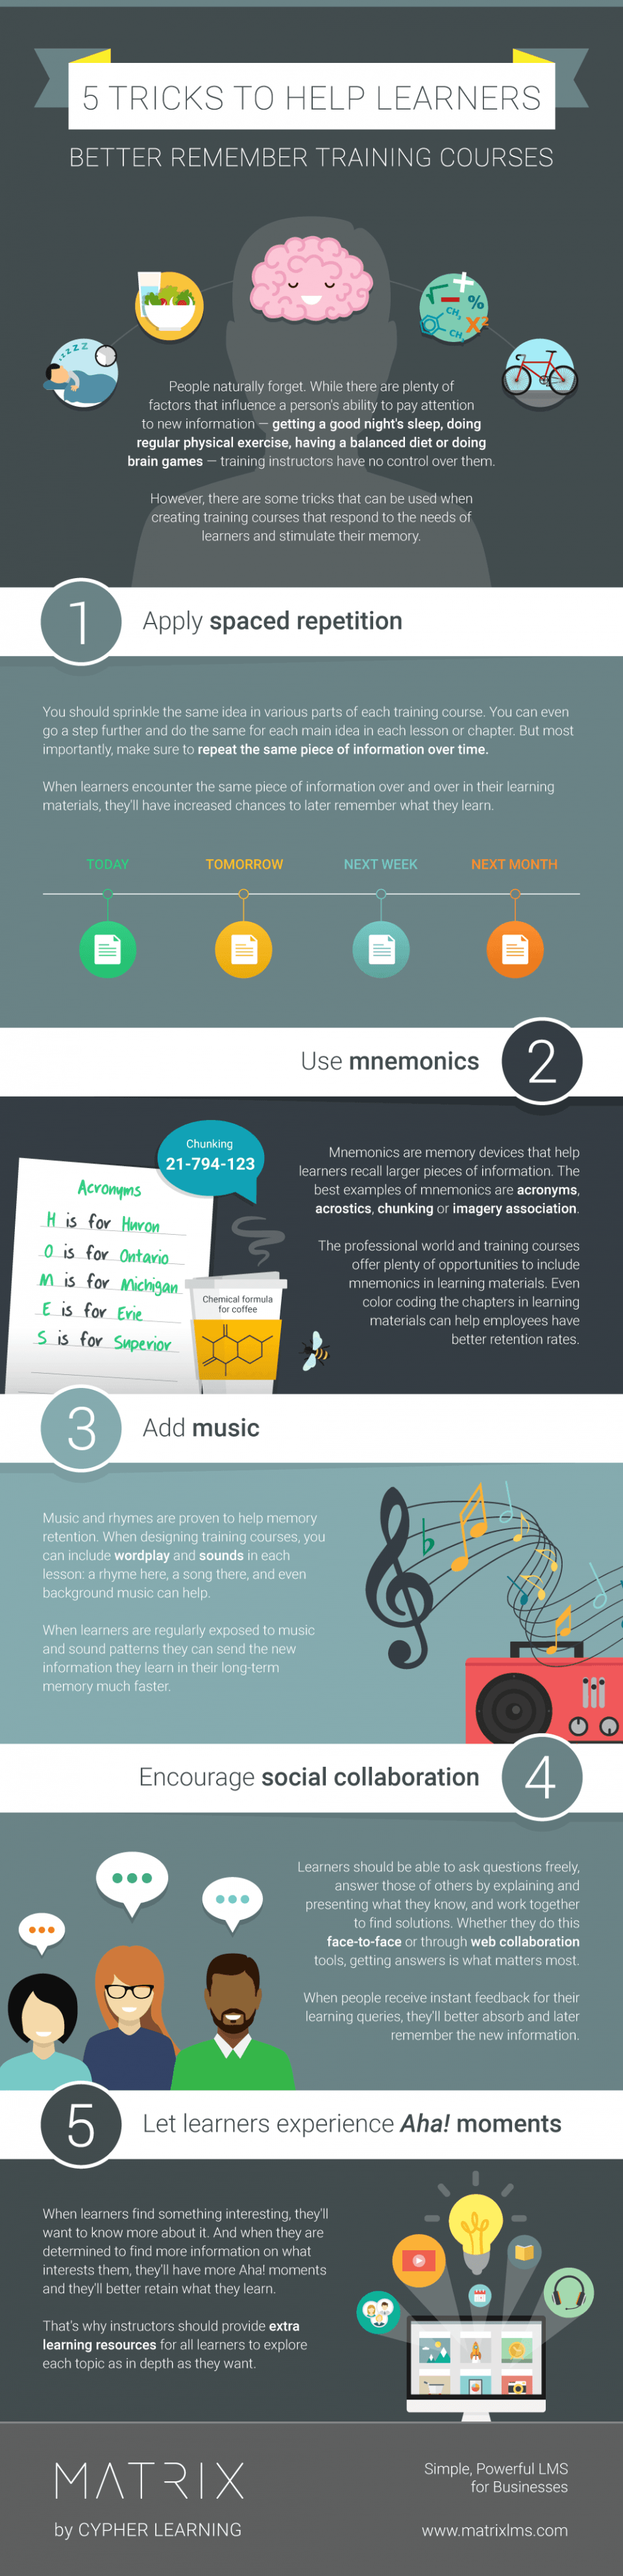 5 Tricks to Help Learners Better Remember Training Courses Infographic